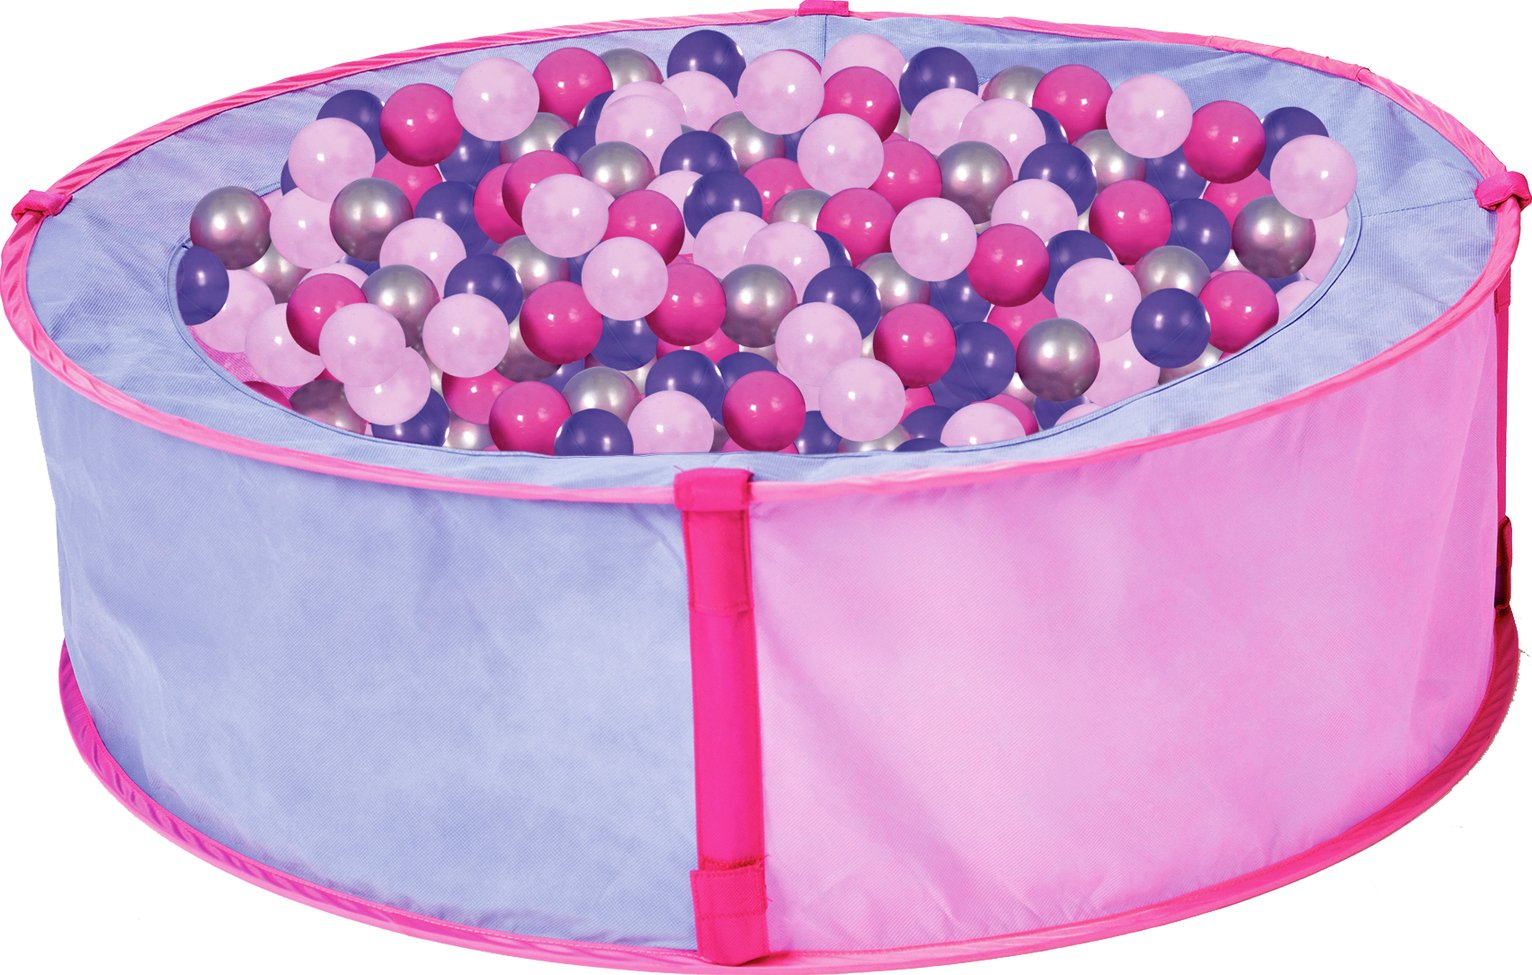 Chad Valley Pink Pop Up Ball Pit